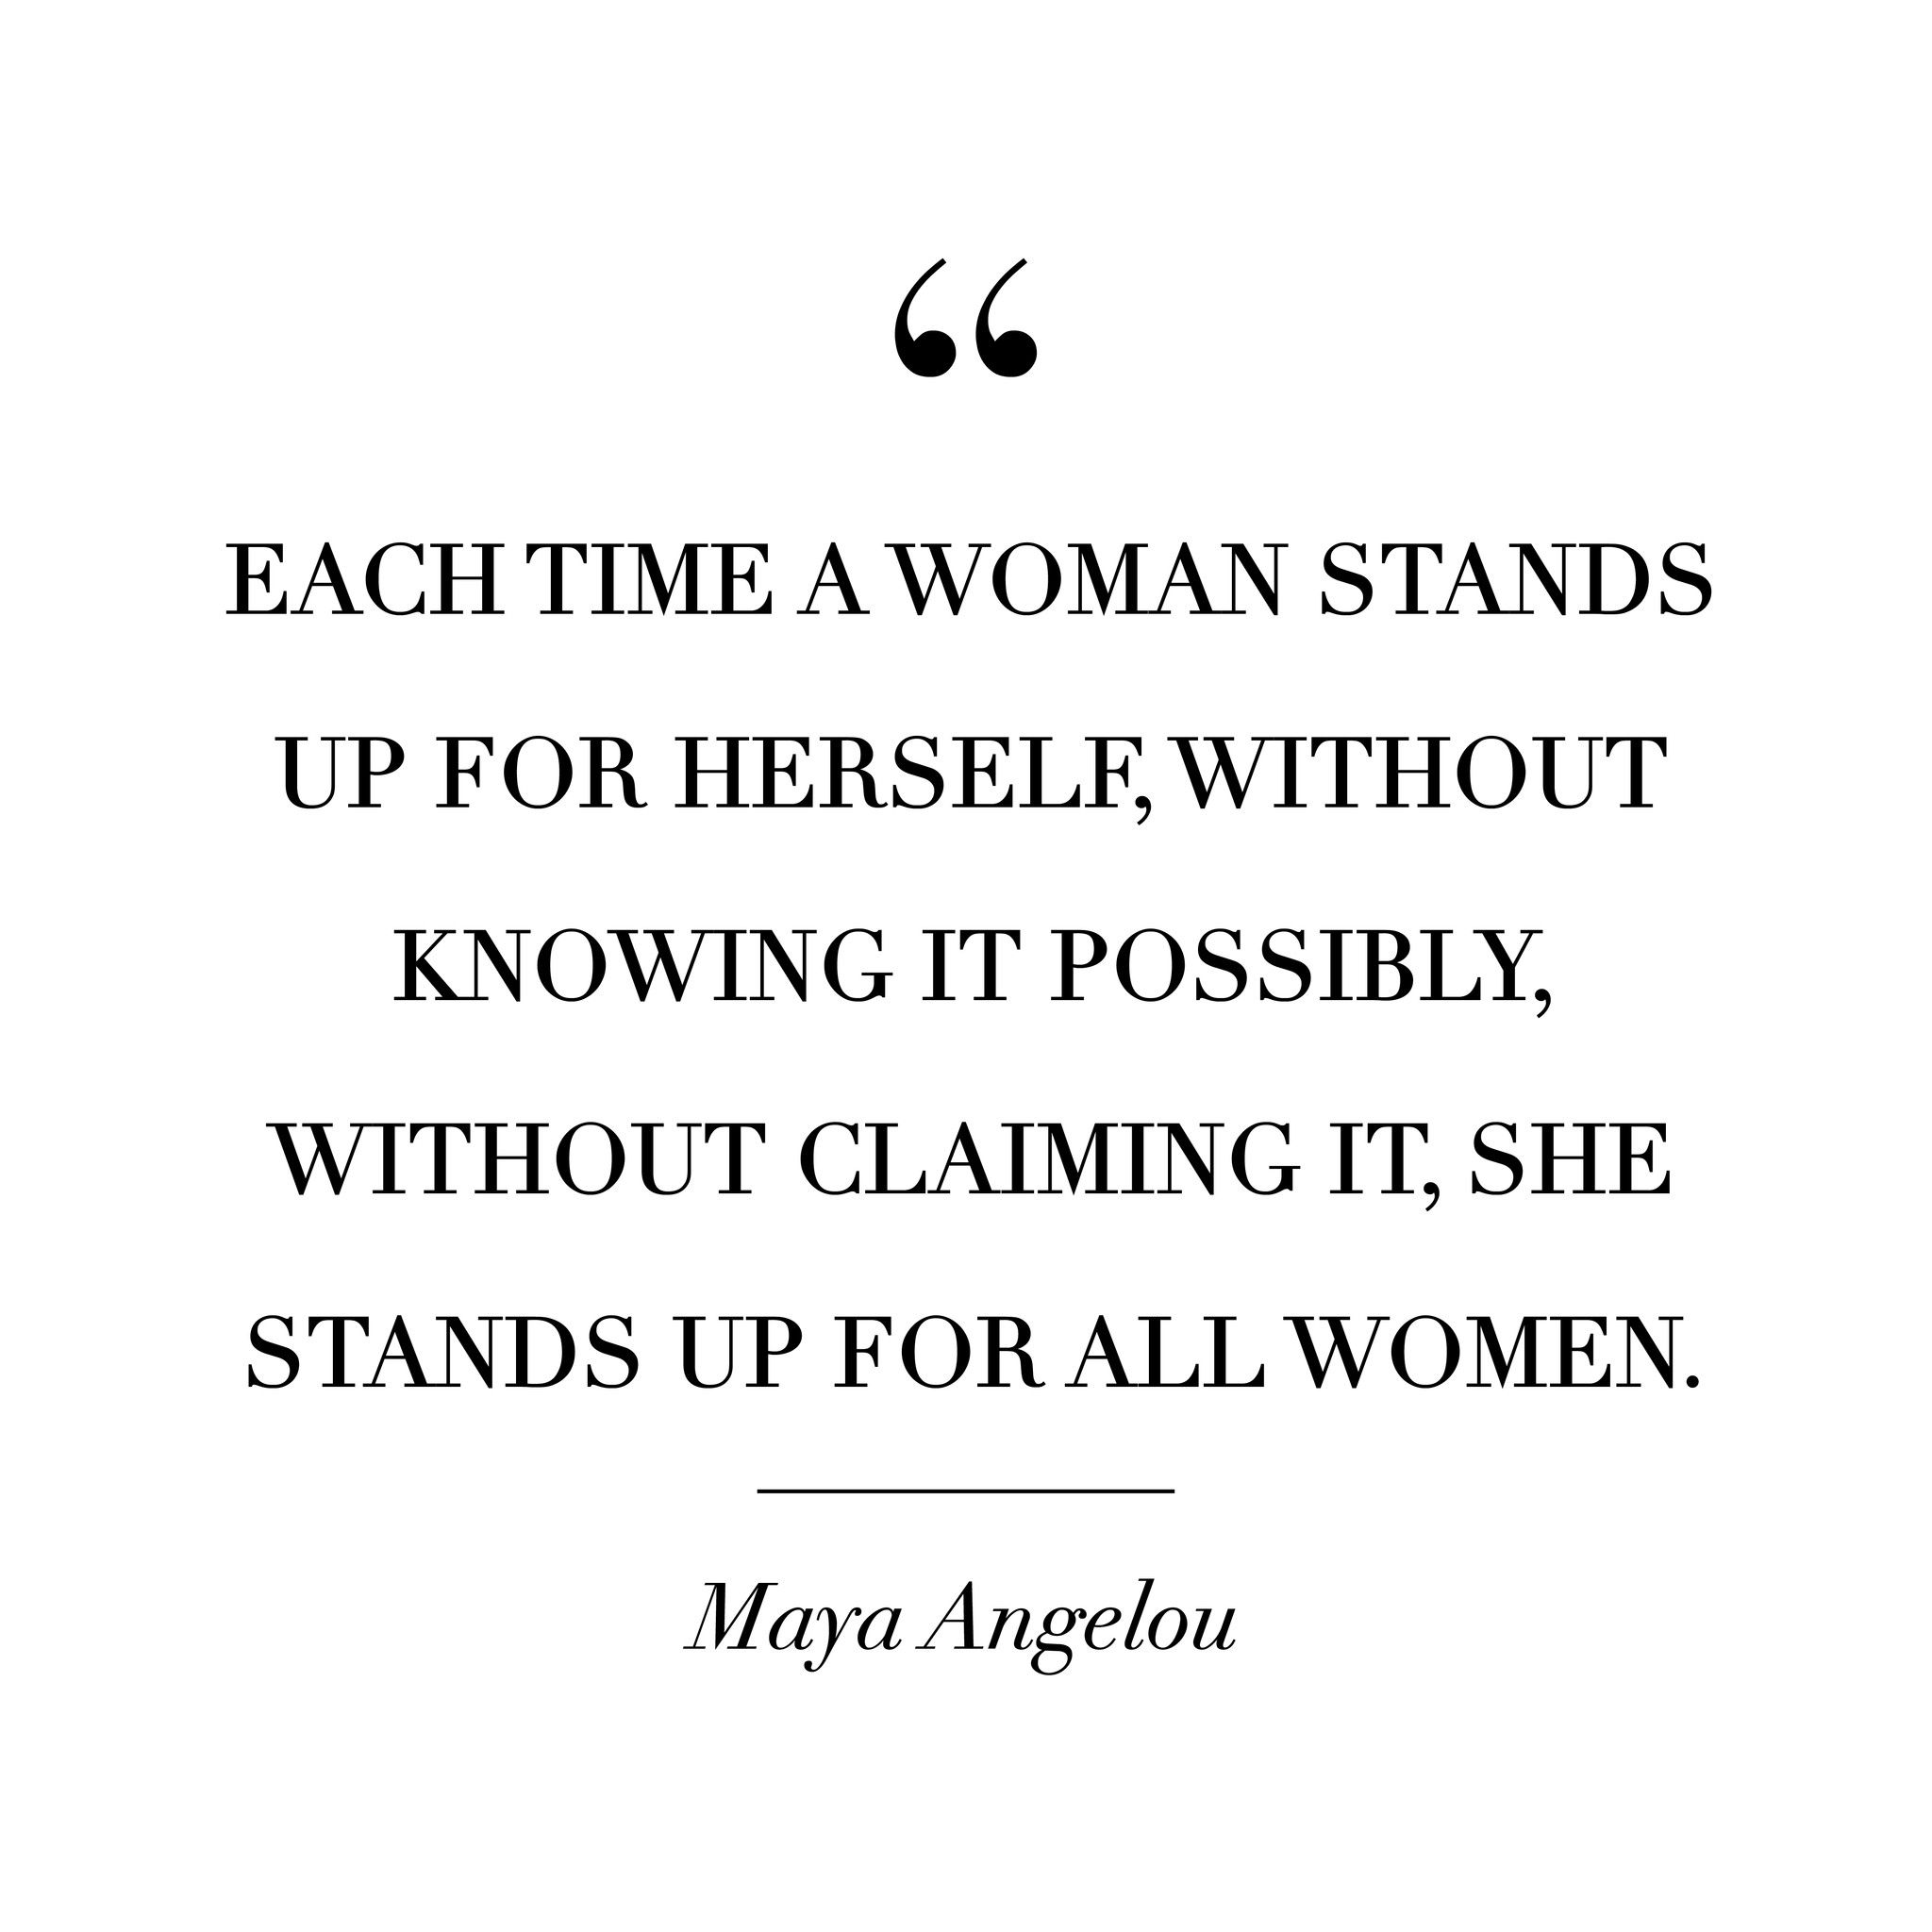 Empowering Women Quotes 8 Empowering Quotesinspirational Women  Inspirational Woman .